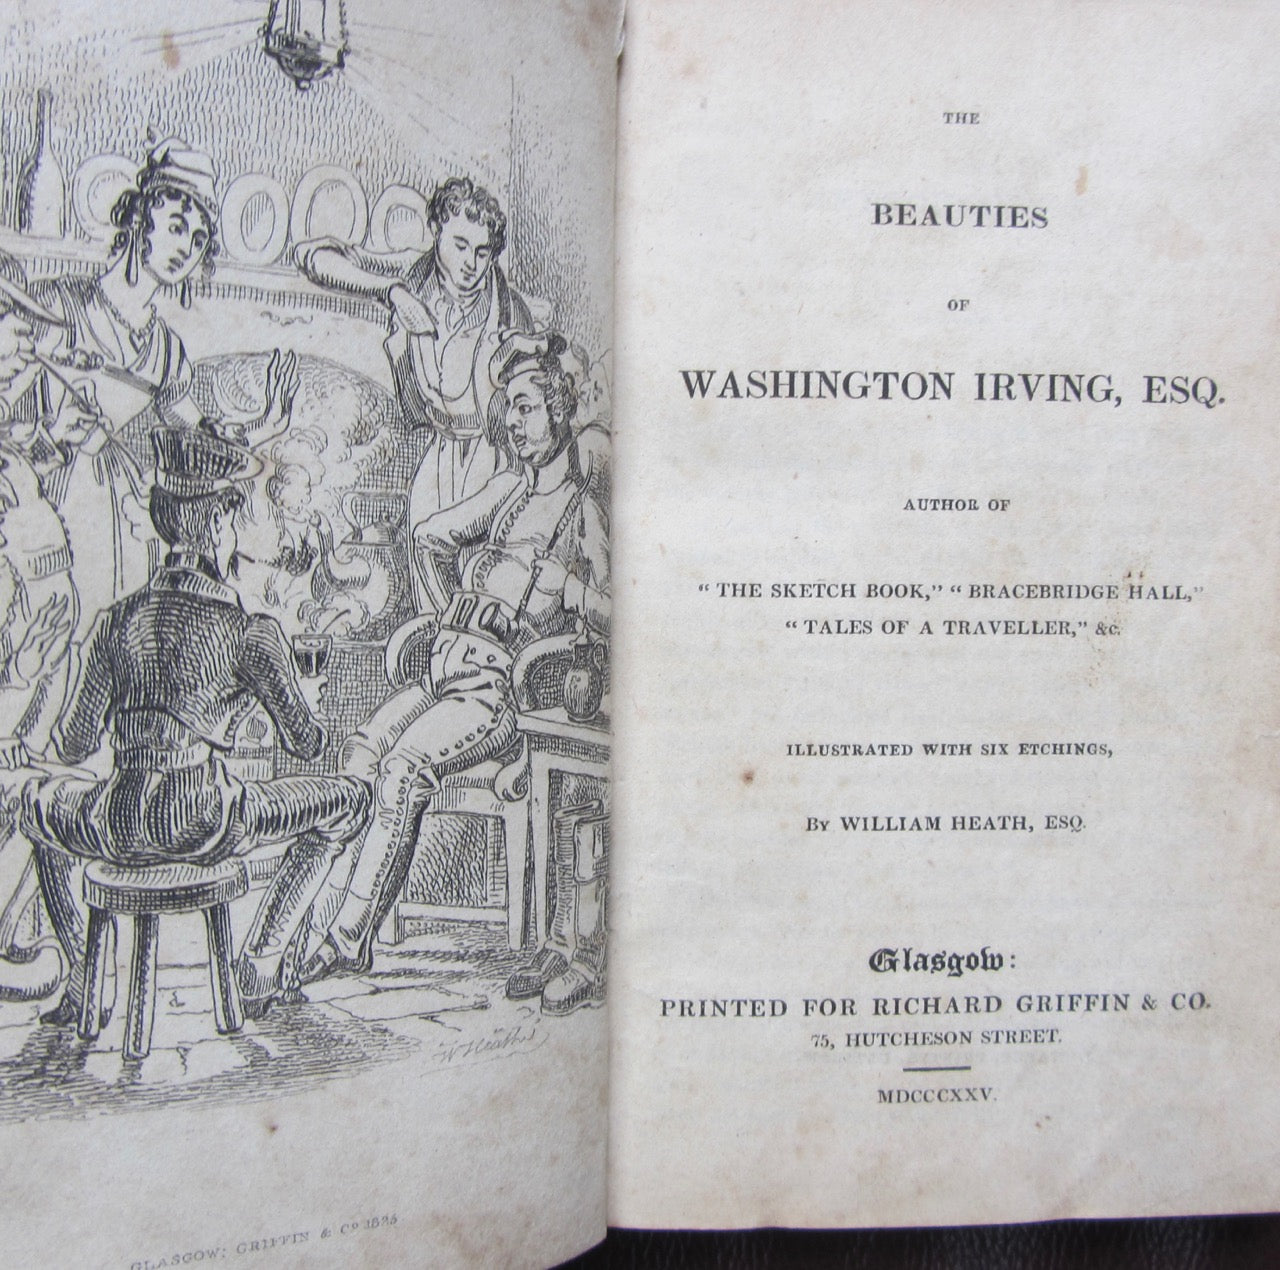 The Beauties of Washington Irving, illustrated with 6